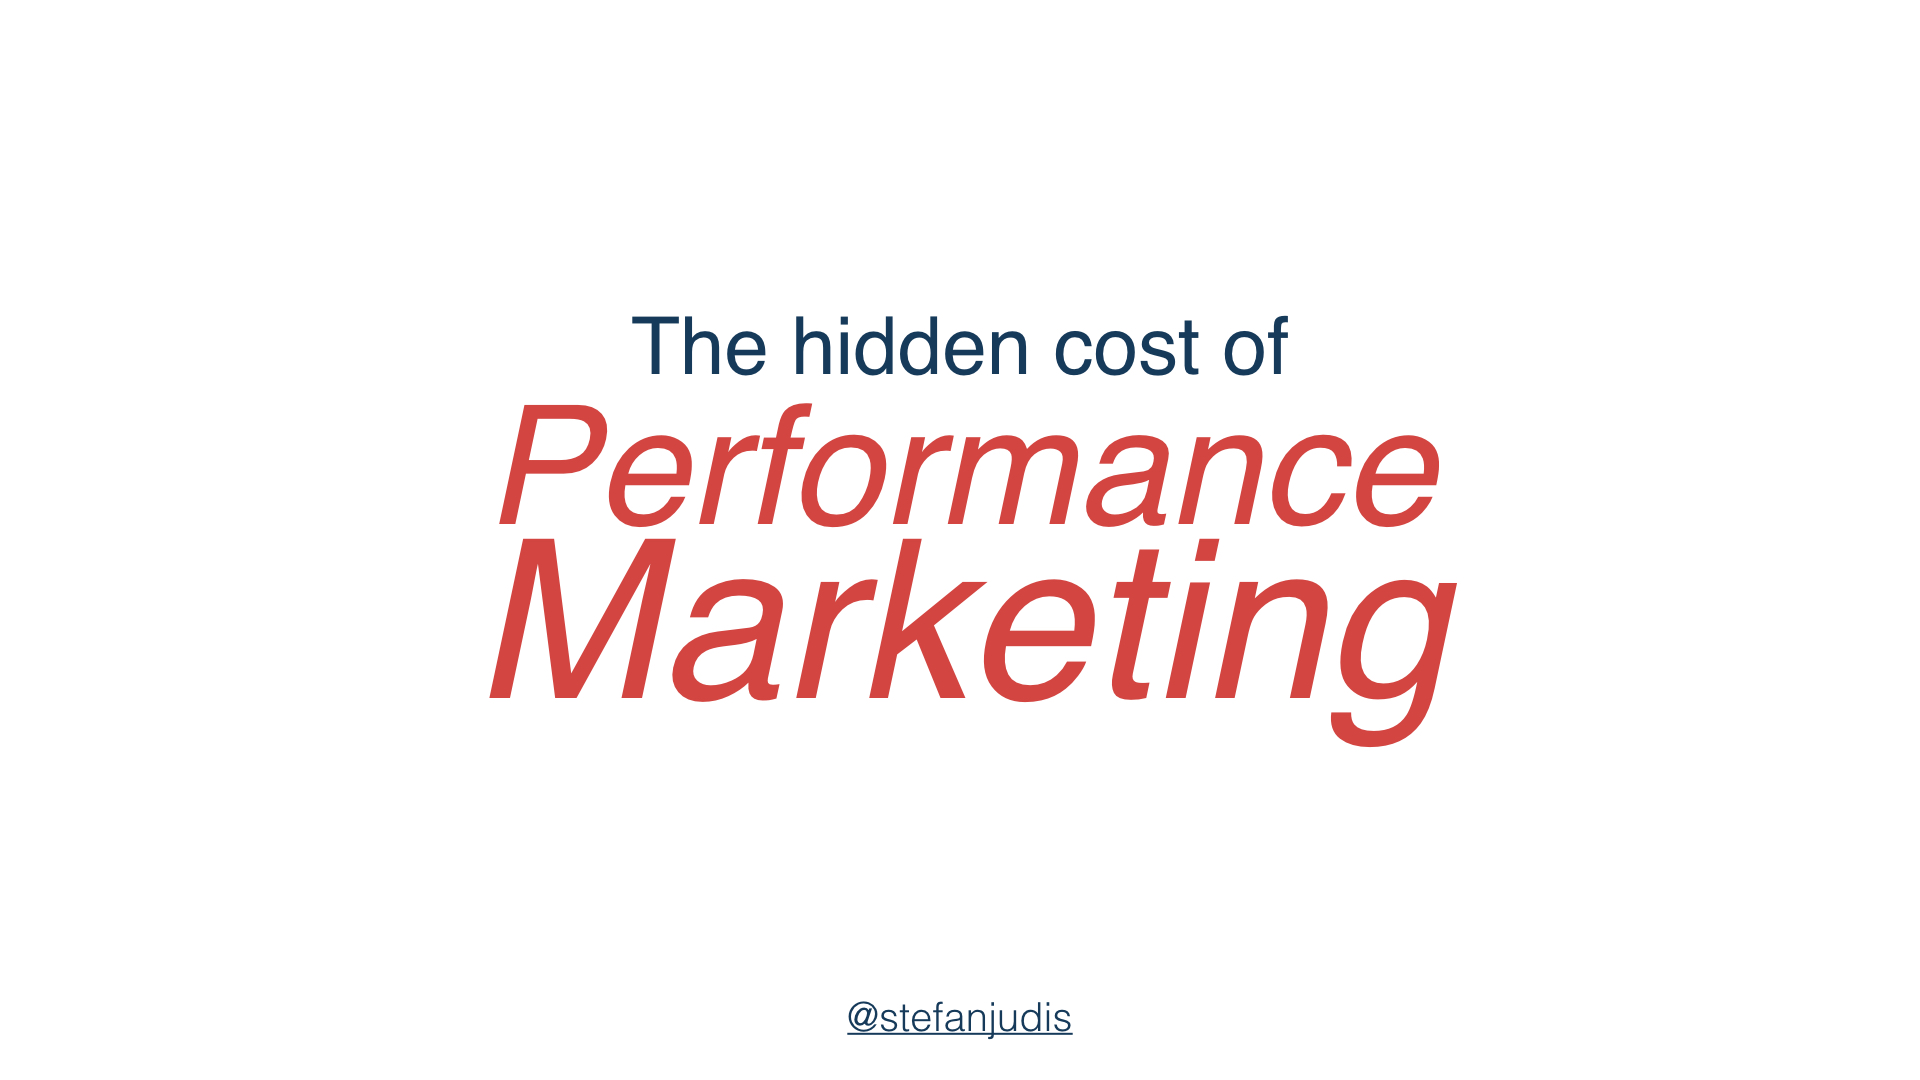 The hidden cost of performance marketing